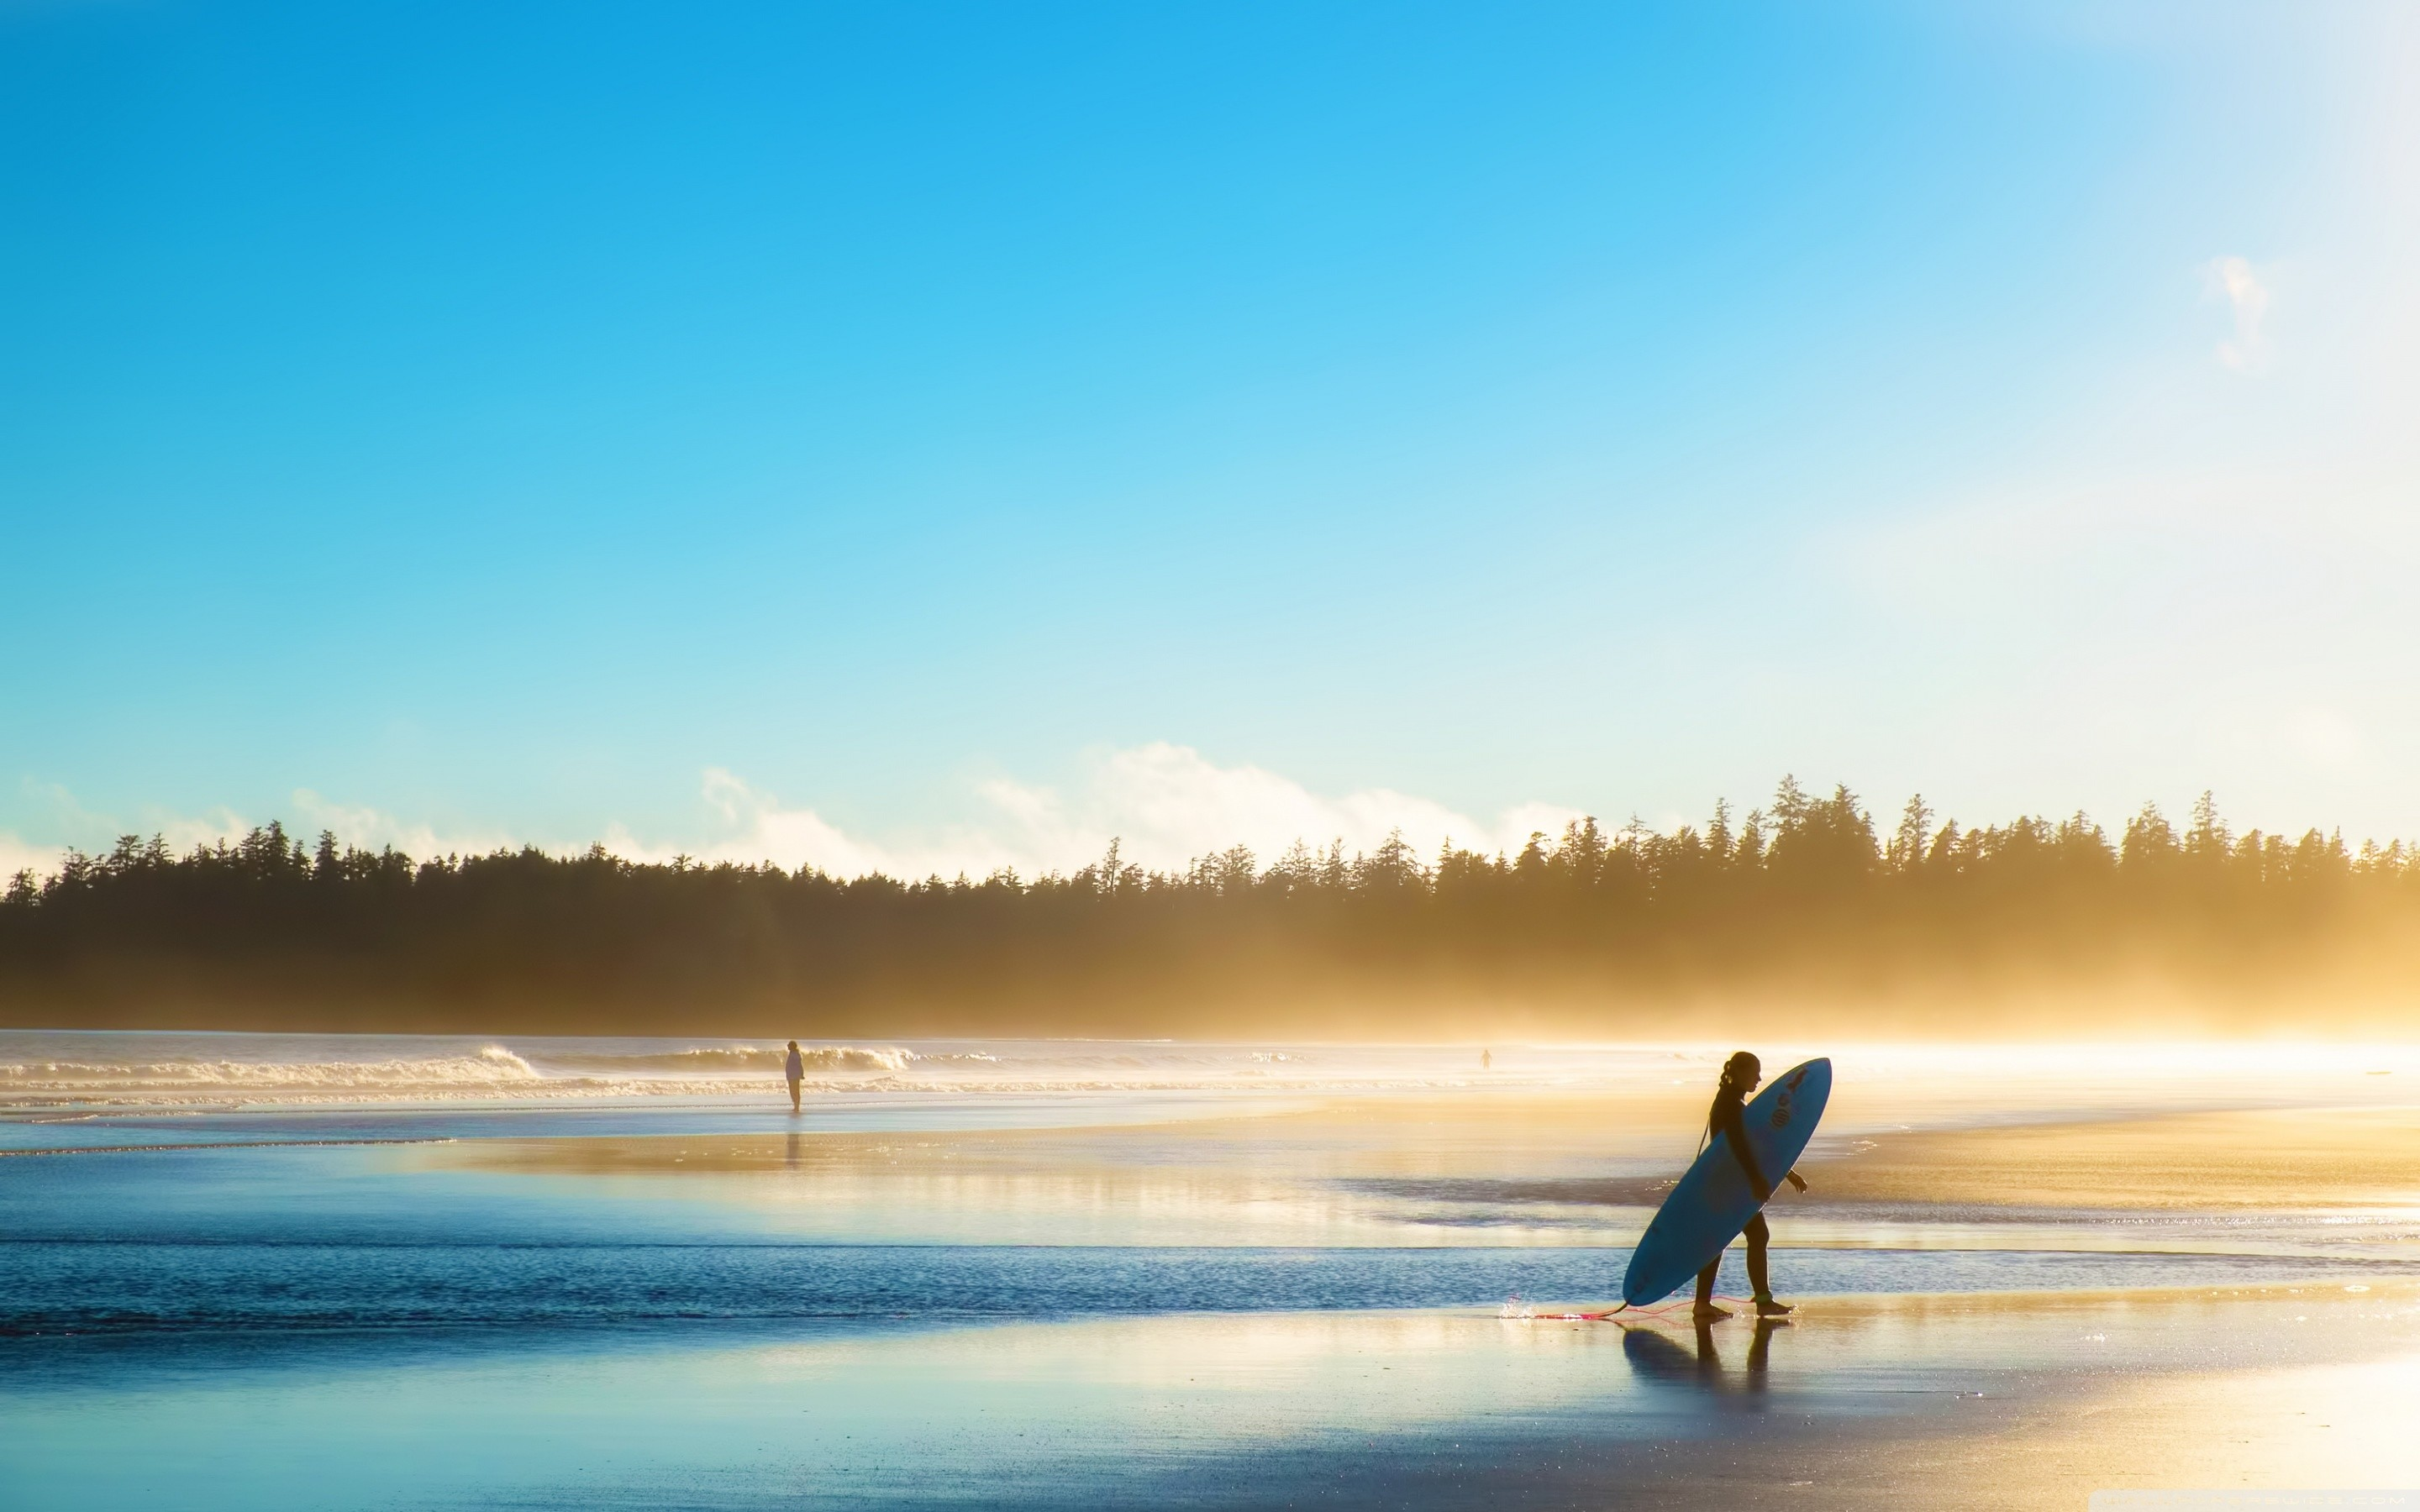 Hd Surfing Wallpaper Wallpapertag